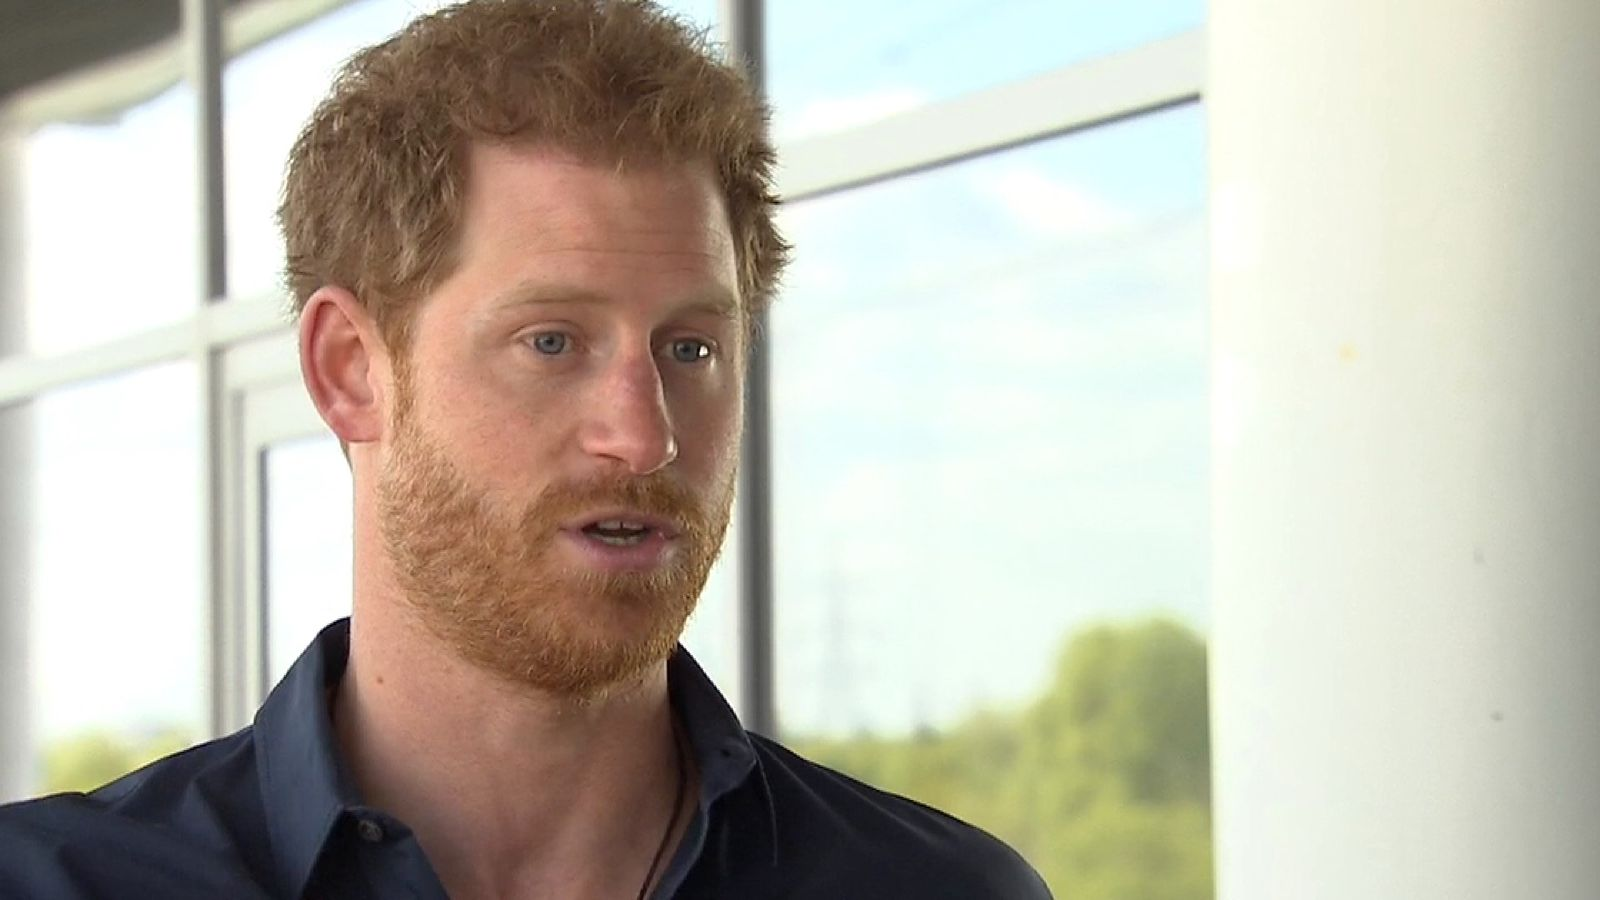 Prince Harry speaks to Sky News about mental health provison